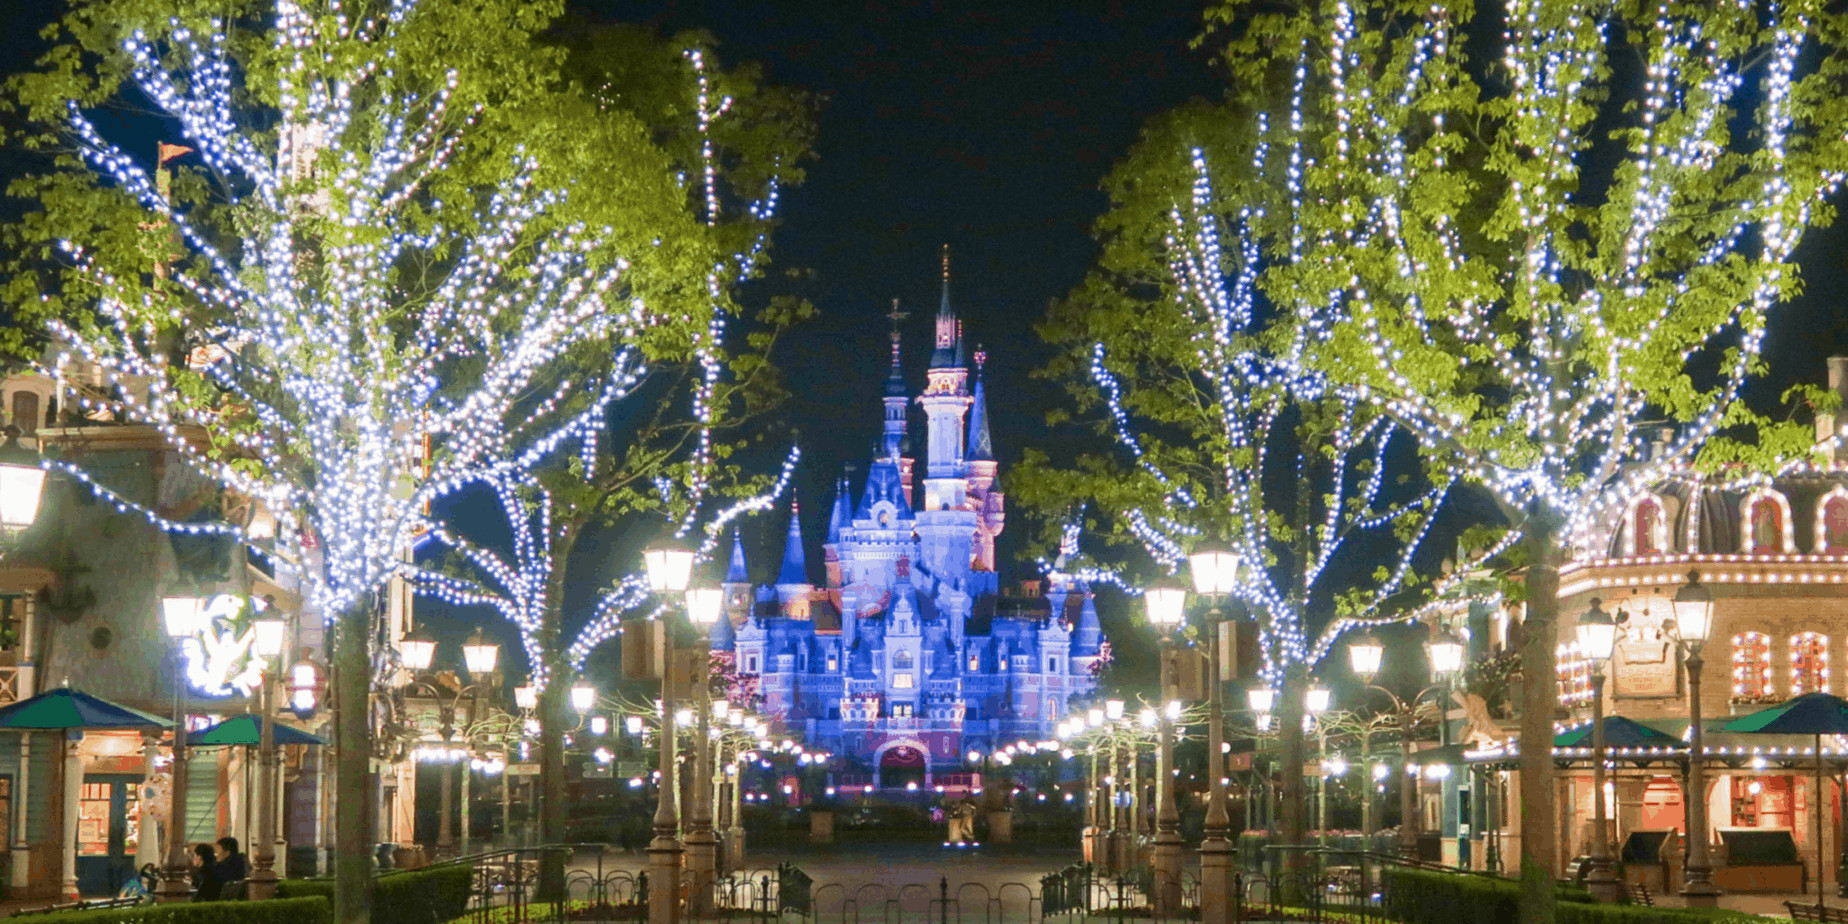 Our Best Shanghai Disneyland Trip Planning Articles